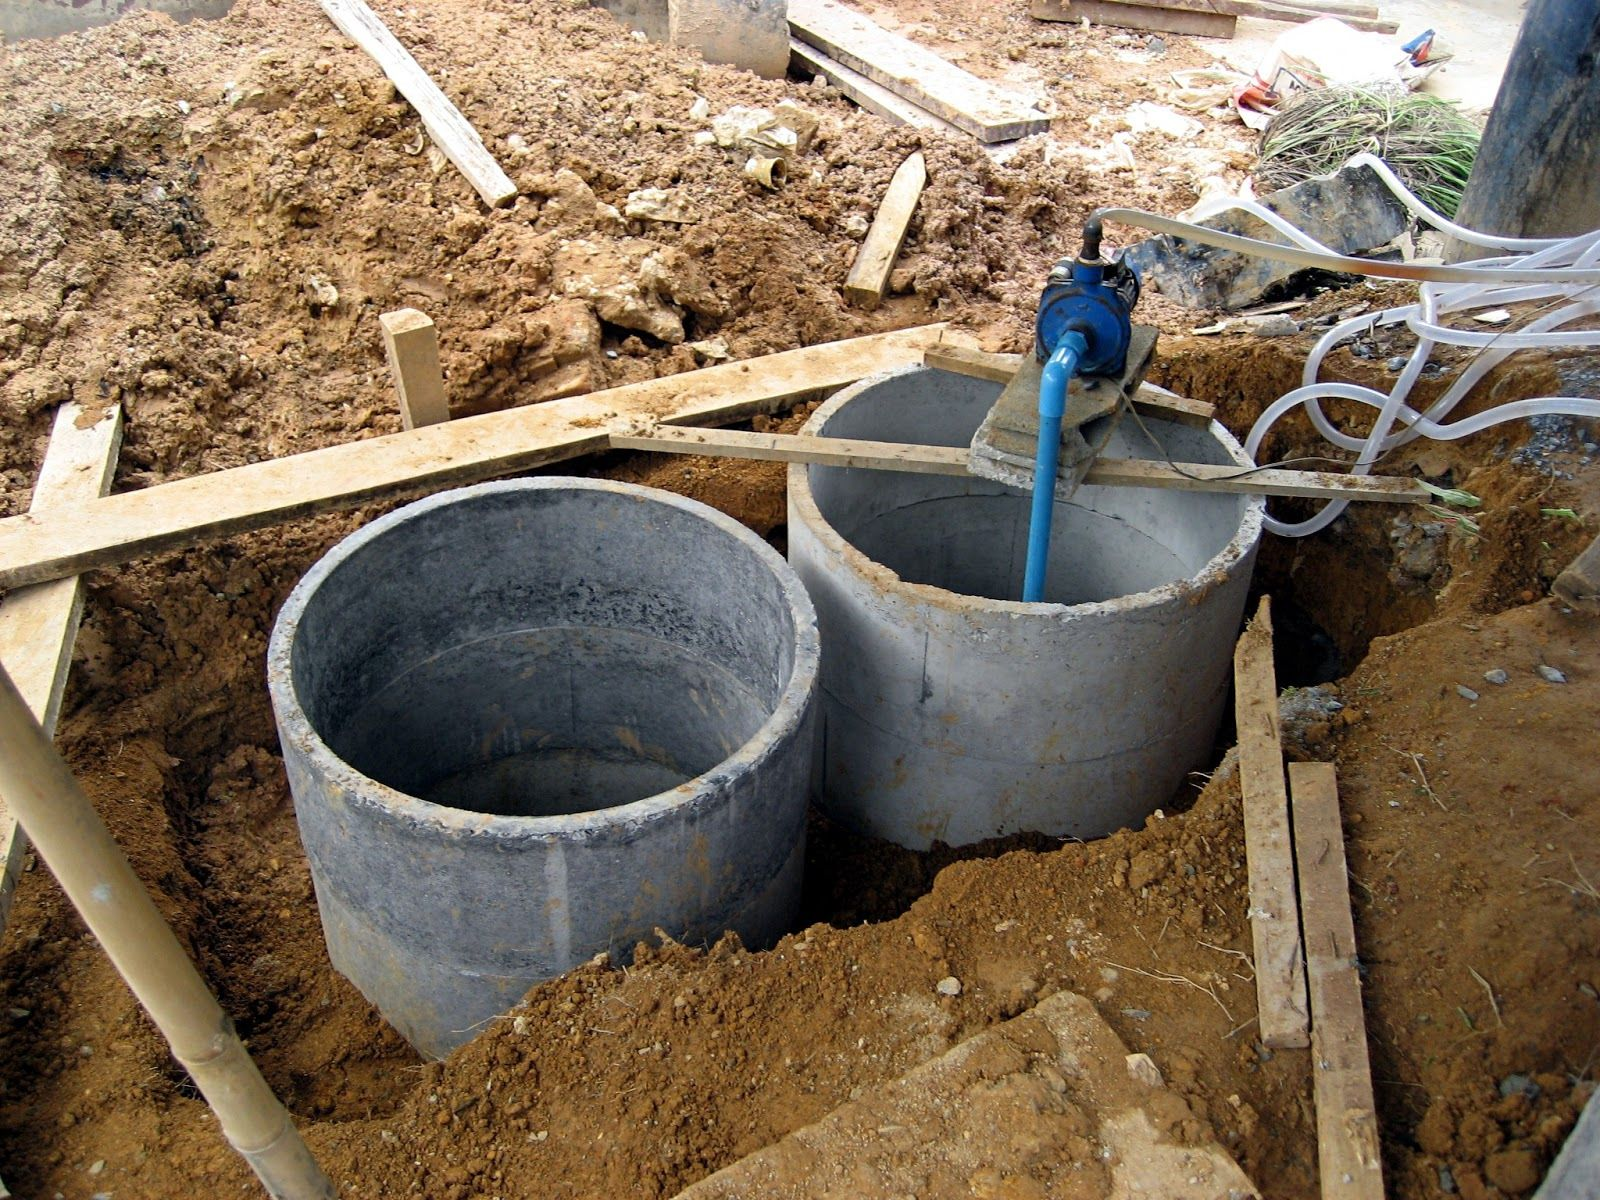 Septic Cleaning CT Septic tank, Septic system service